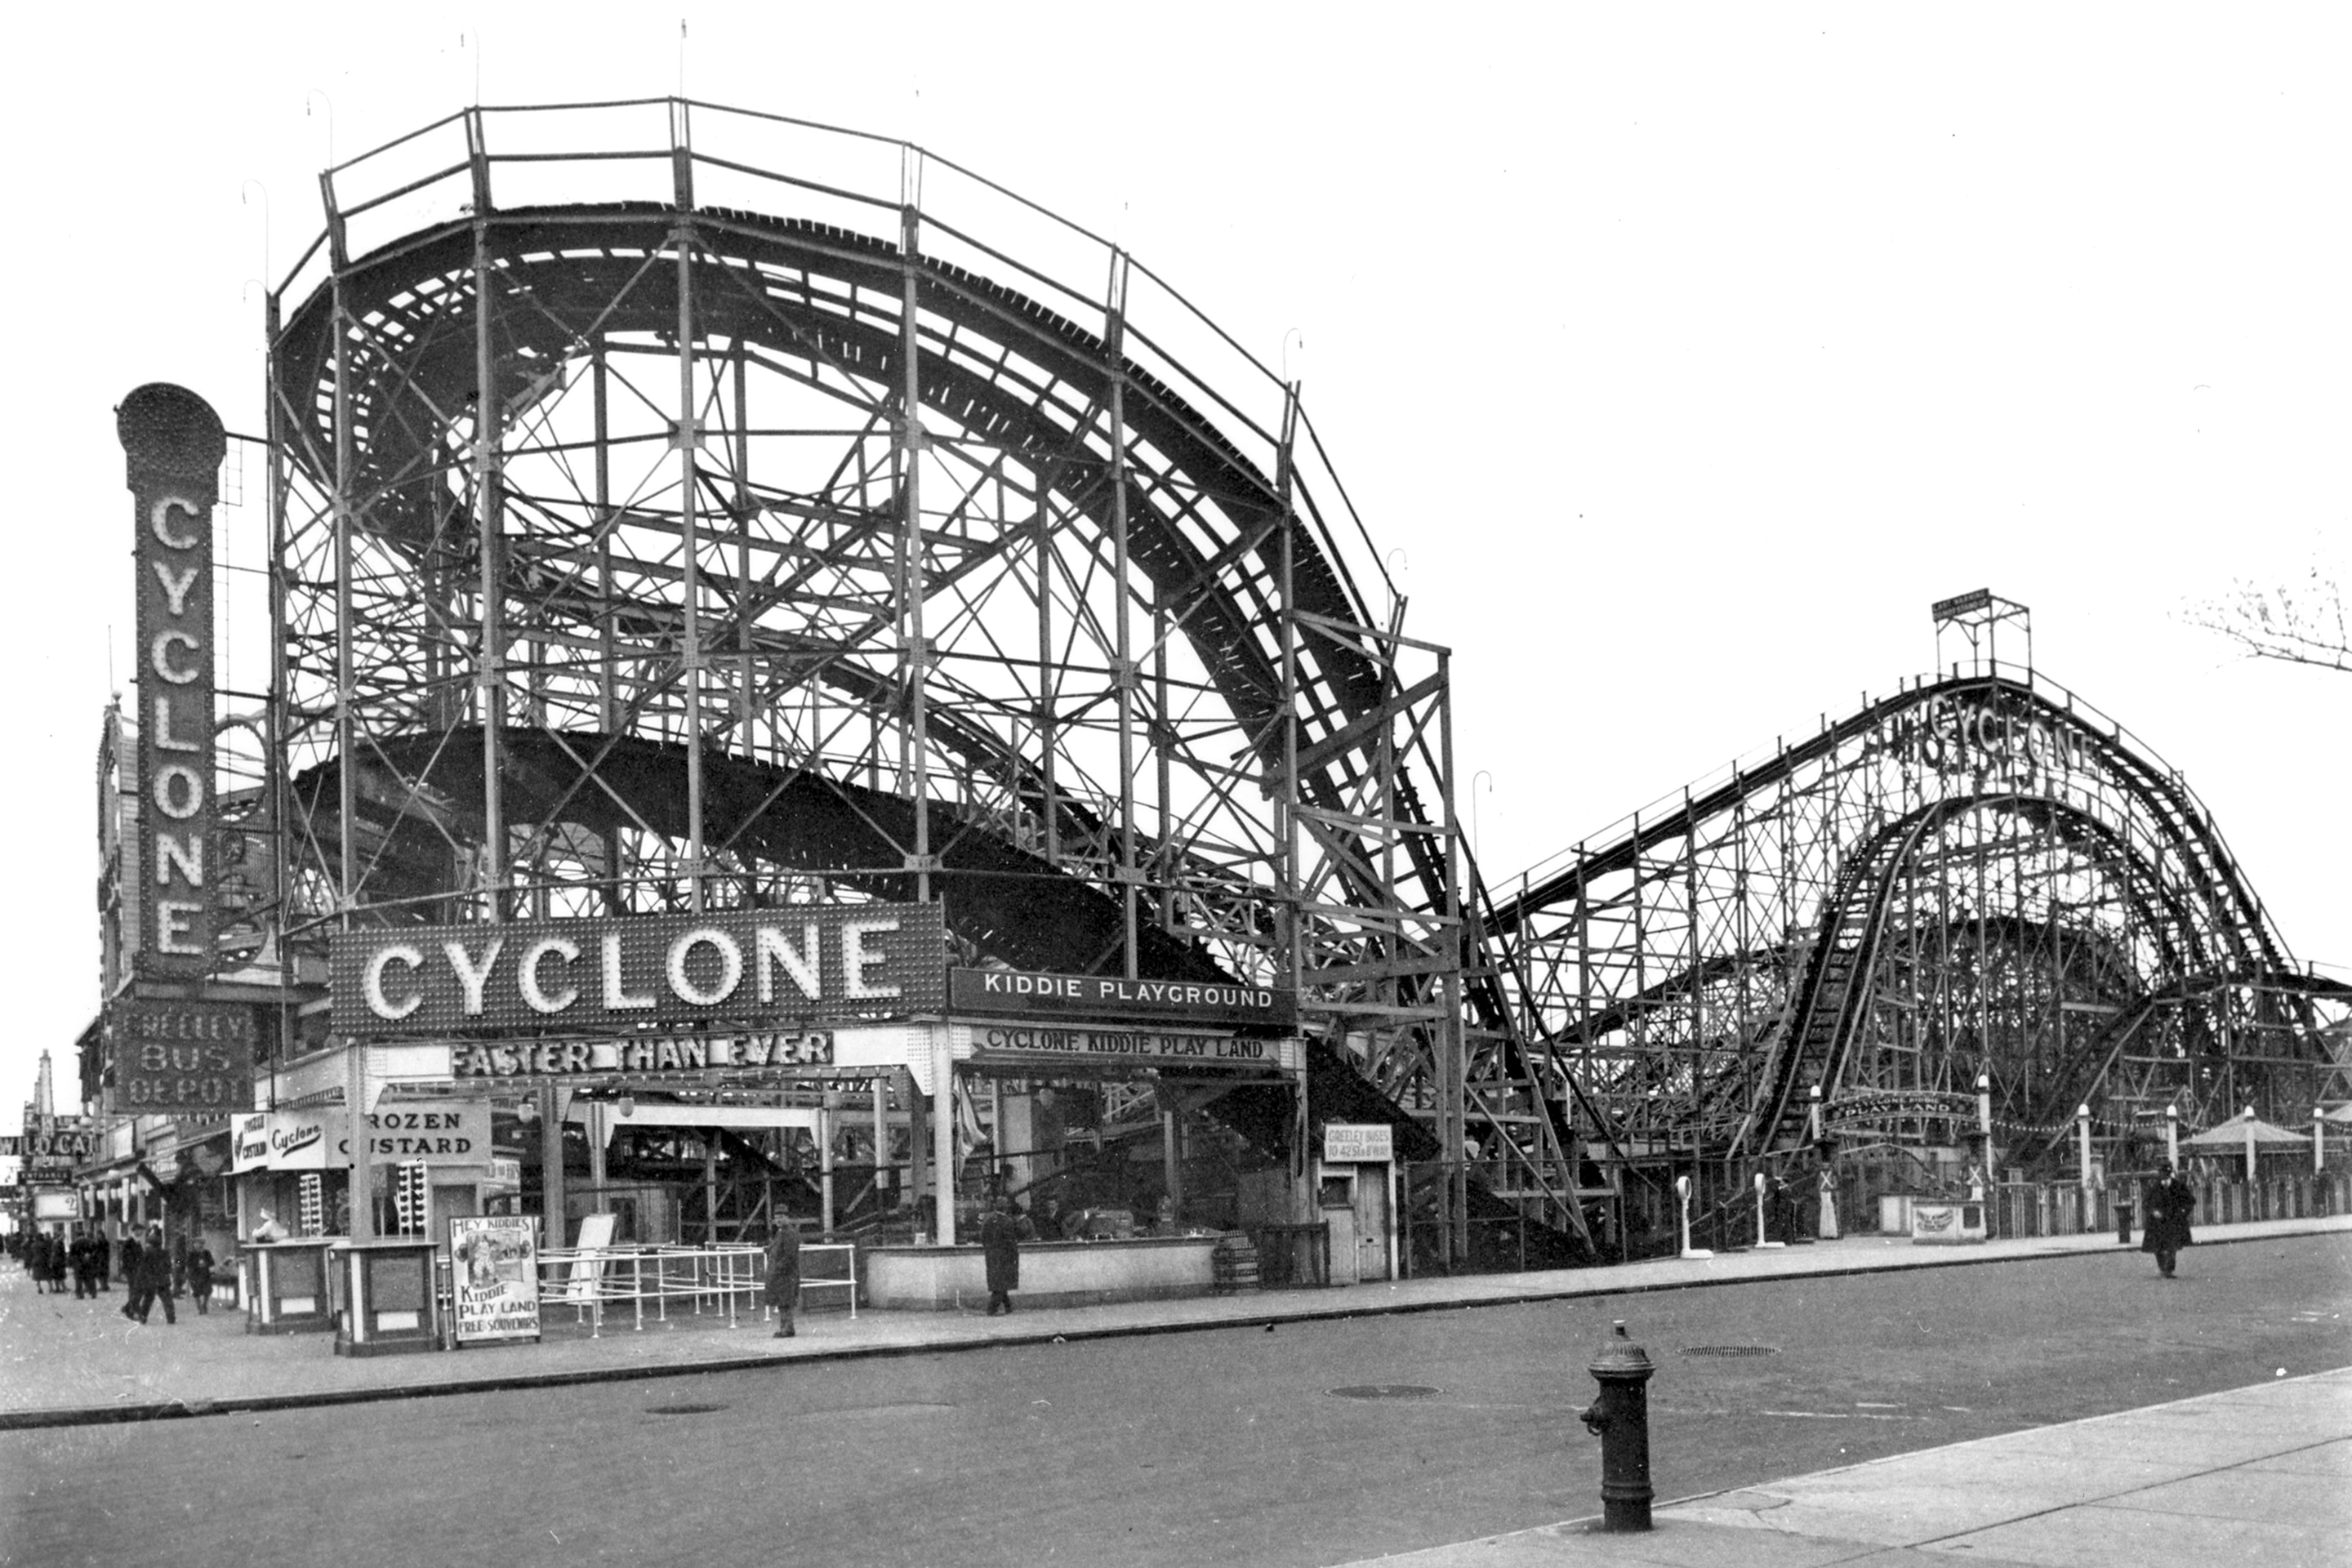 Rollercoaster Cyclone pictured in 1940.